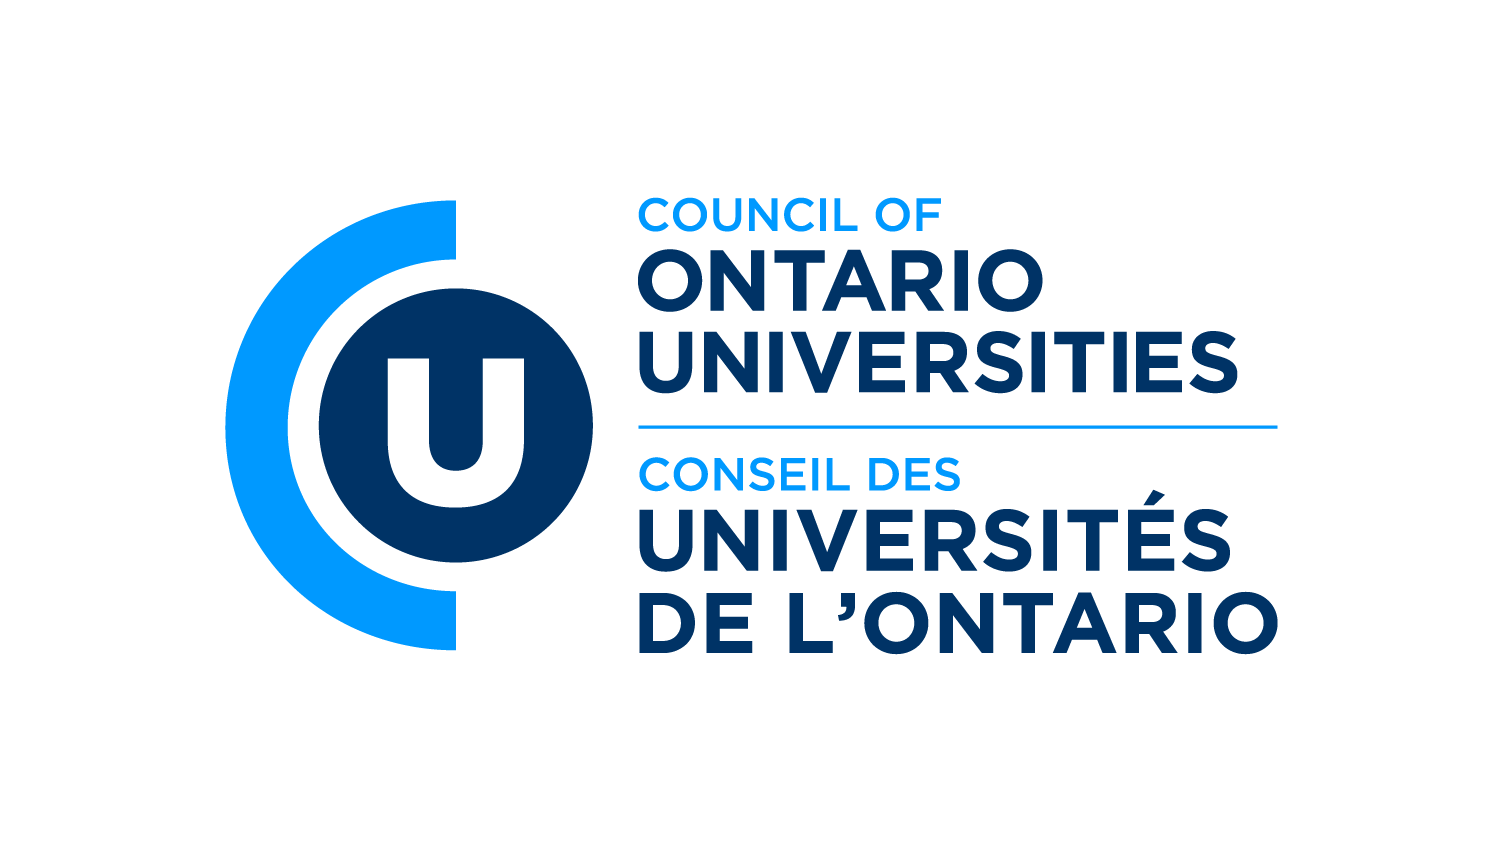 Council of Ontario Universities logo for print